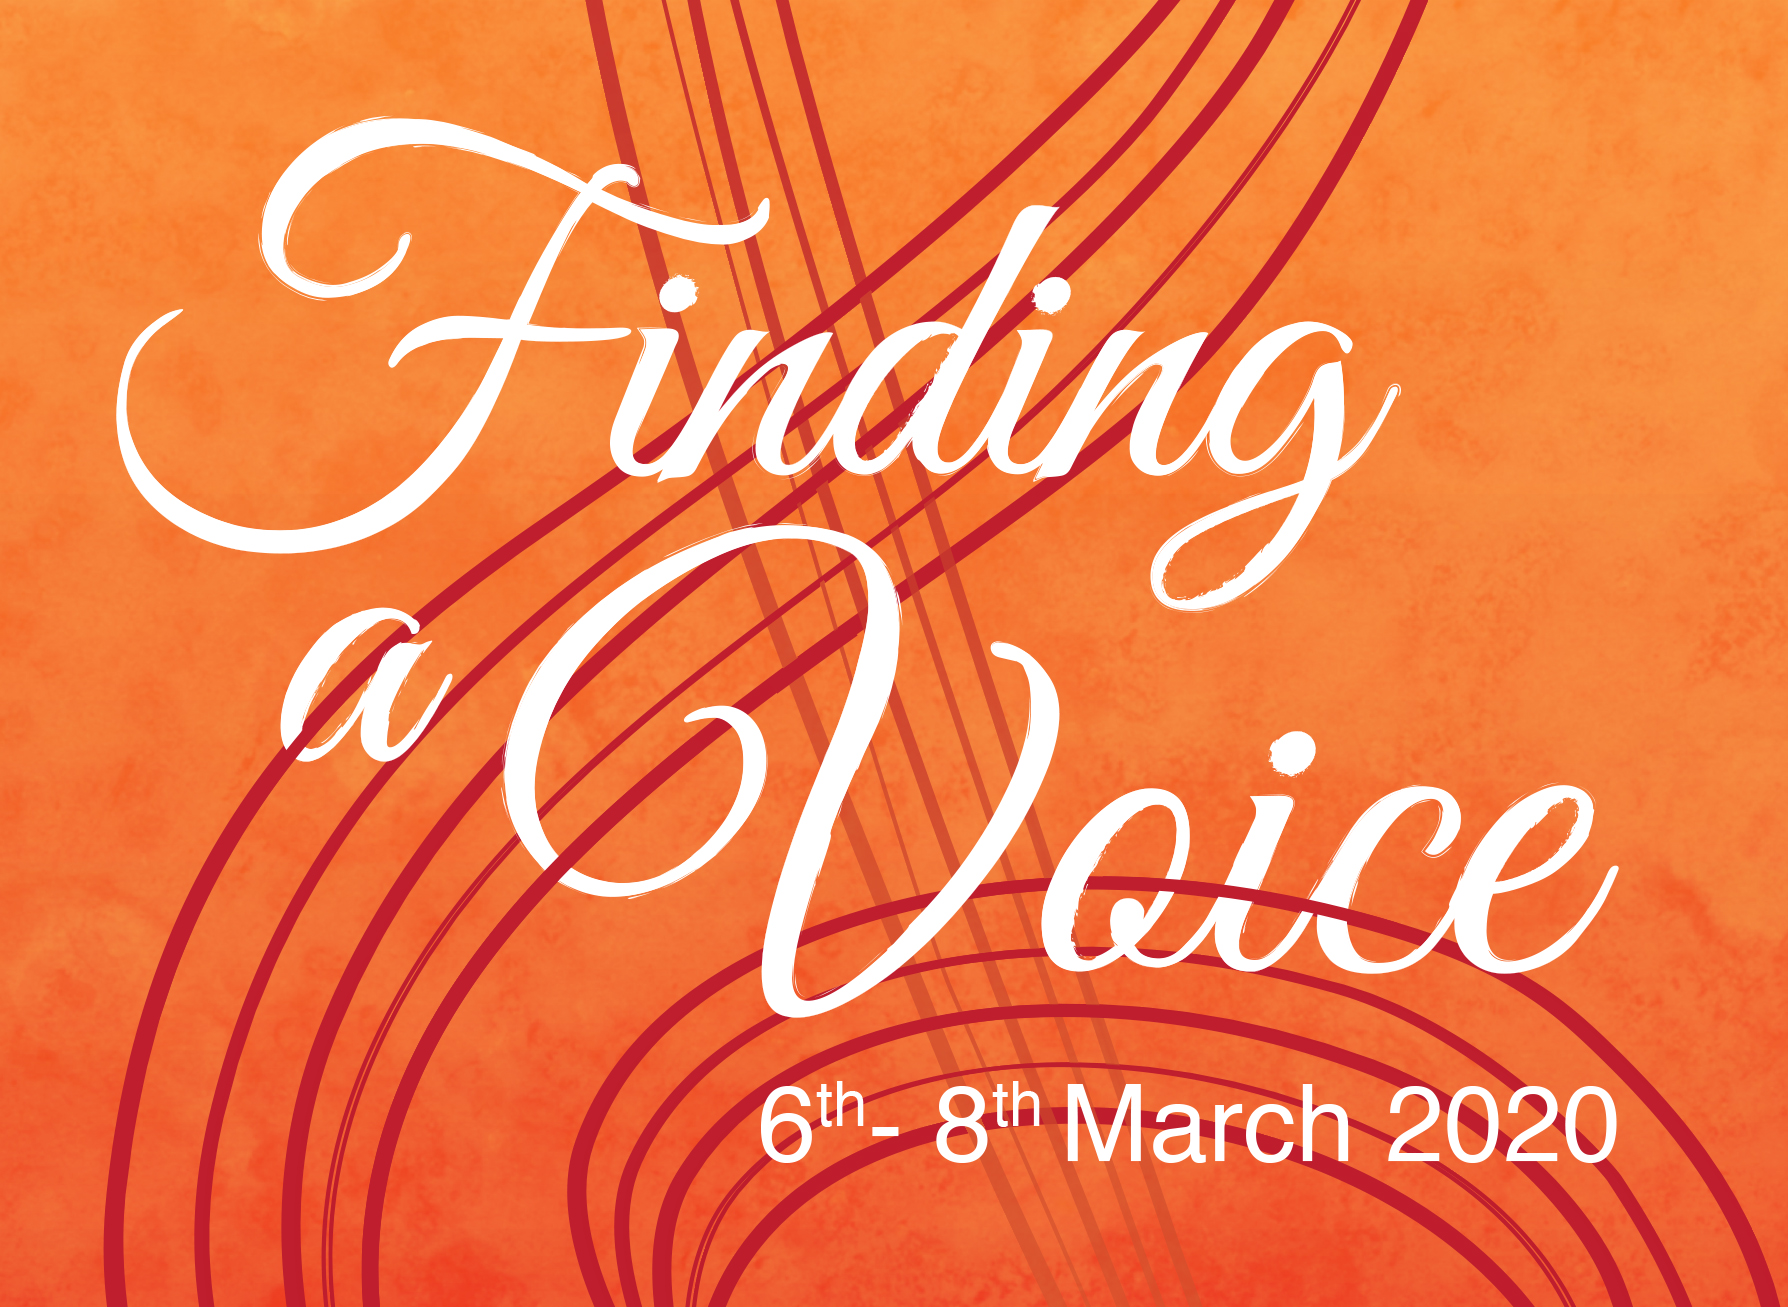 Finding A Voice 6th - 8th March 2020